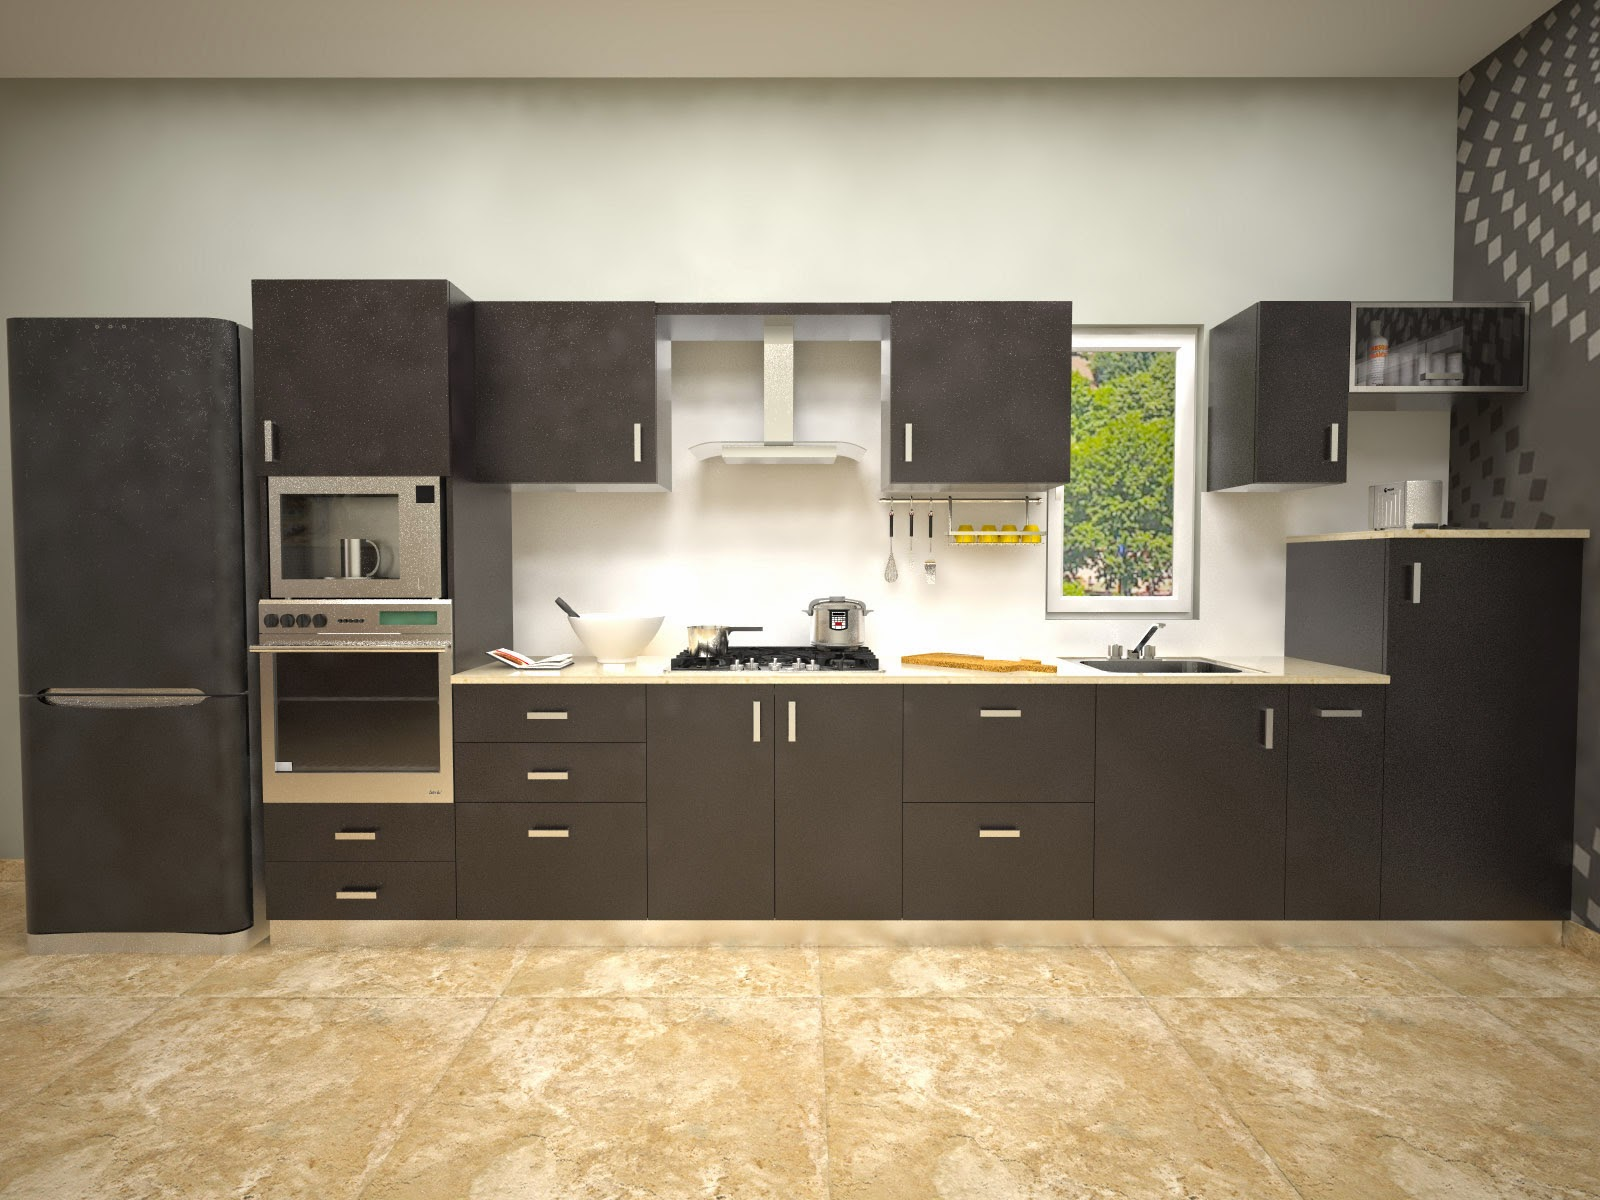 Aamoda kitchen straight modular kitchen for Kitchen gallery